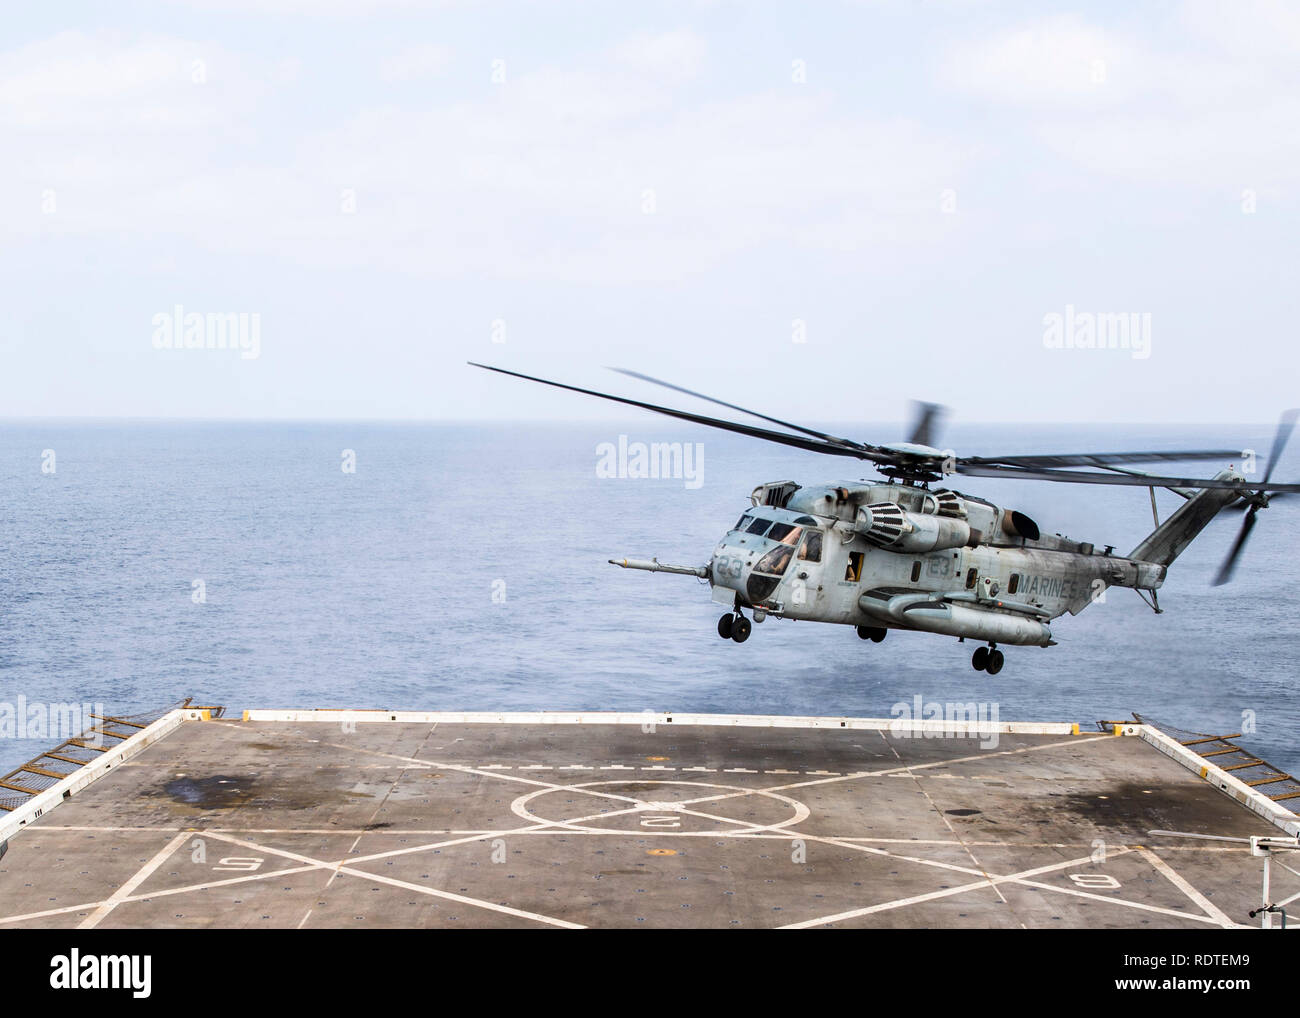 190116-N-PH222-1202 ARABIAN SEA (Jan. 16, 2018) A CH-53 Sea Stallion helicopter, attached to Marine Medium Tiltrotor Squadron (VMM) 166 (Reinforced), prepares to land on the flight deck aboard the San Antonio-class amphibious transport dock ship USS Anchorage (LPD 23) while on a deployment of the Essex Amphibious Ready Group (ARG) and 13th Marine Expeditionary Unit (MEU). The Essex ARG/13th MEU is flexible and persistent Navy-Marine Corps team deployed to the U.S. 5th Fleet area of operations in support of naval operations to ensure maritime stability and security in the Central Region, connec - Stock Image